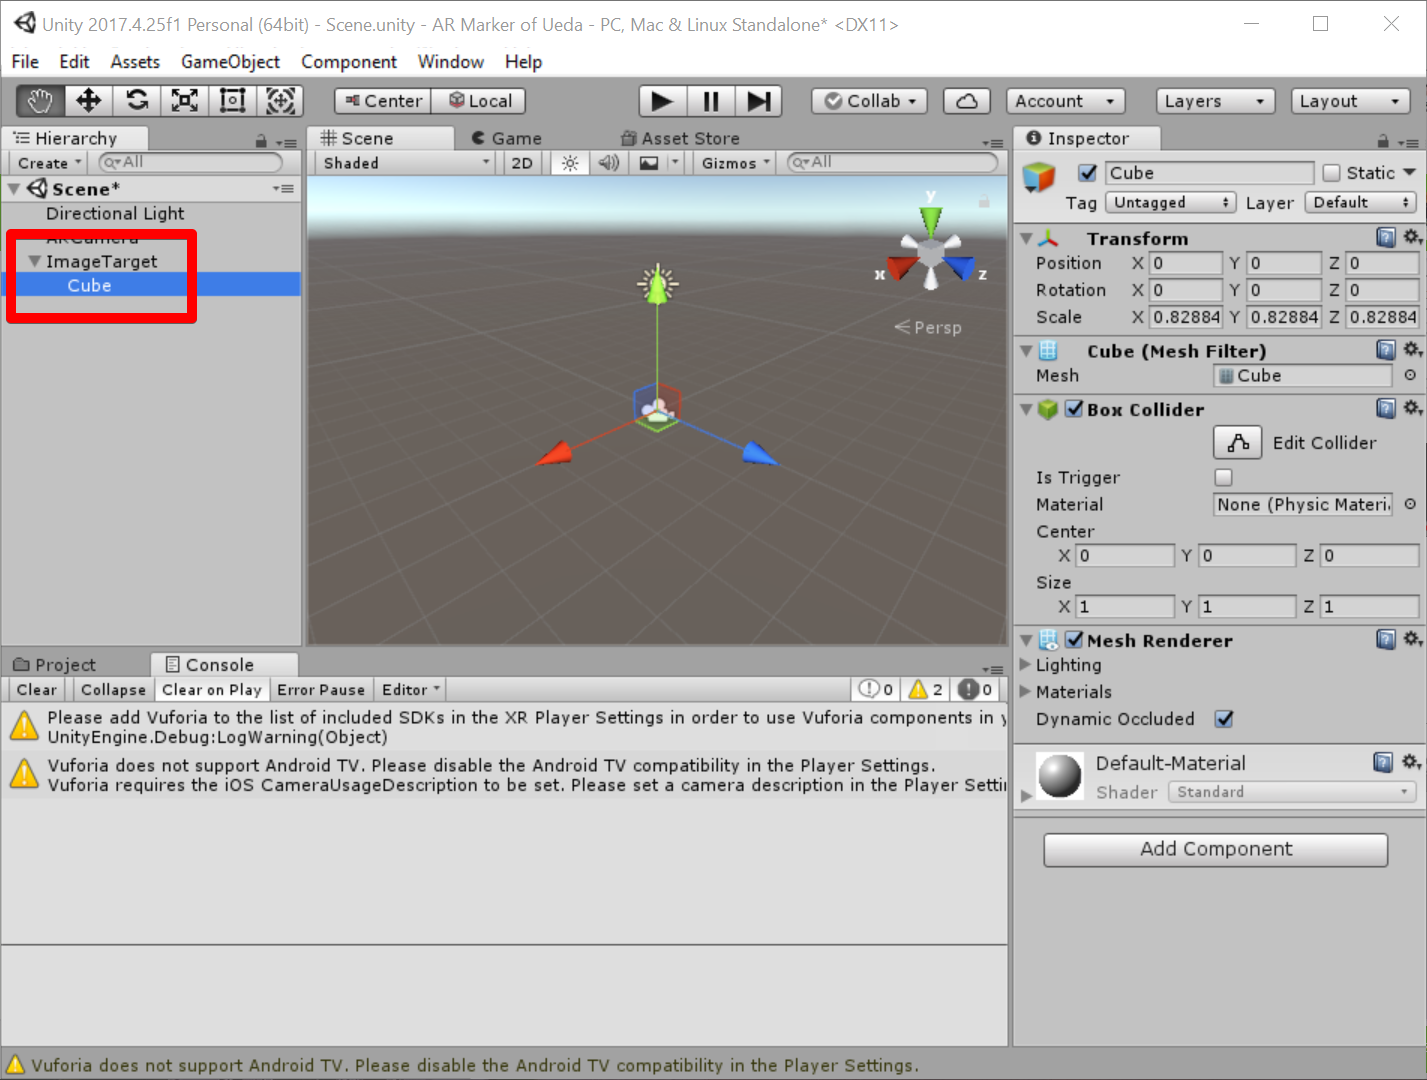 Unity 2017.4.25f1 Personal (64bit) - Scene.unity - AR Marker of Ueda - PC, Mac & Linux Standalone_ _DX11_ 2019-07-05 07.52.34.png